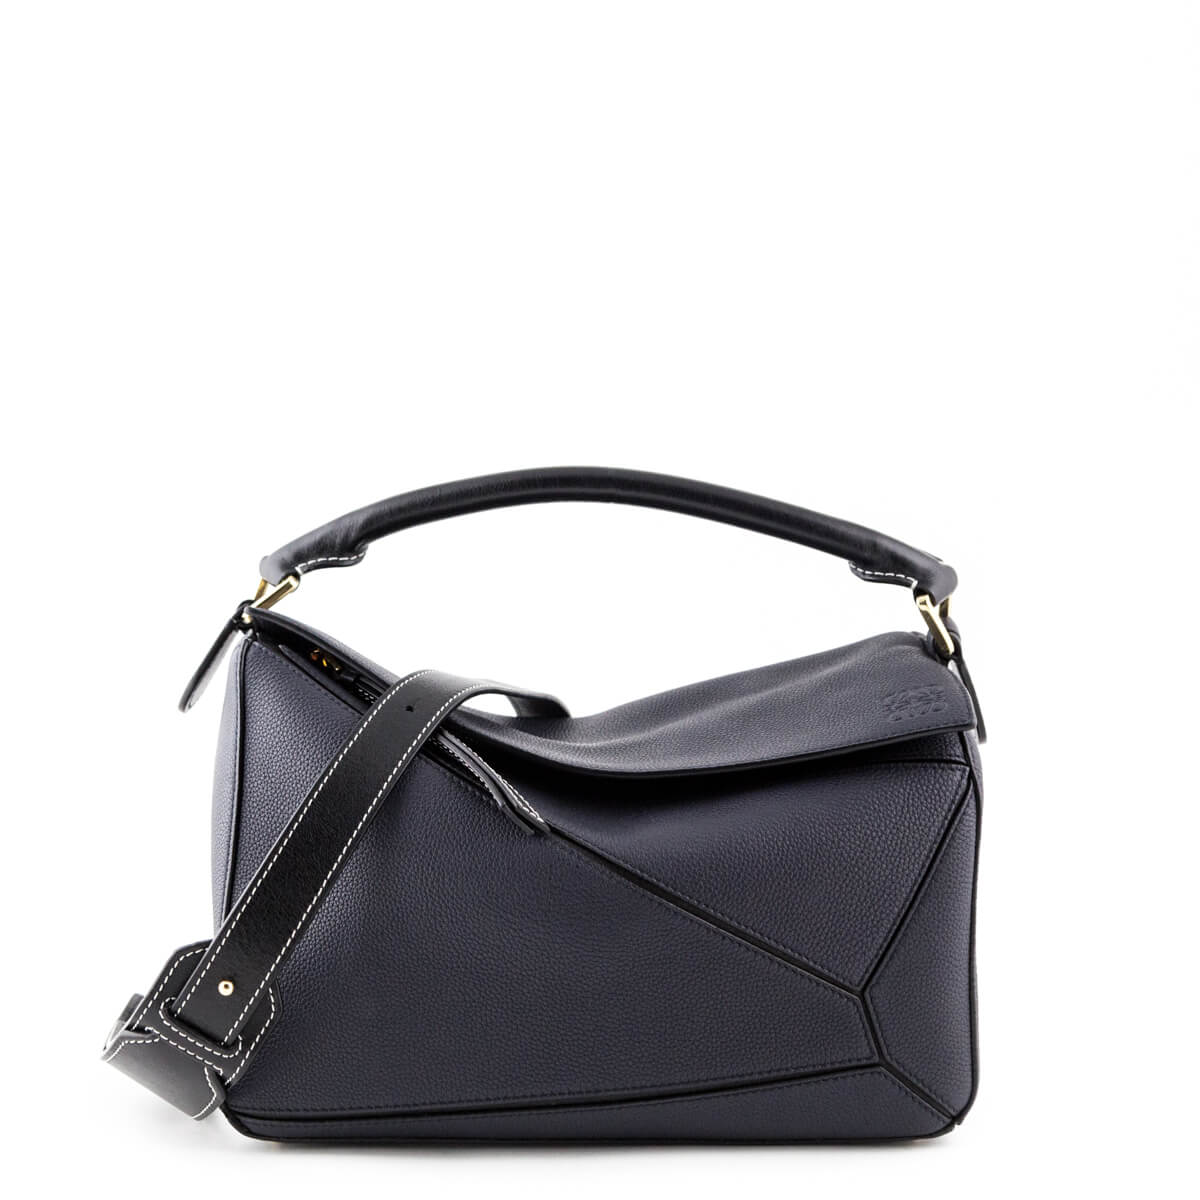 f861761a3 Loewe Midnight Blue Calfskin Medium Puzzle Bag - LOVE that BAG - Preowned  Authentic Designer Handbags ...